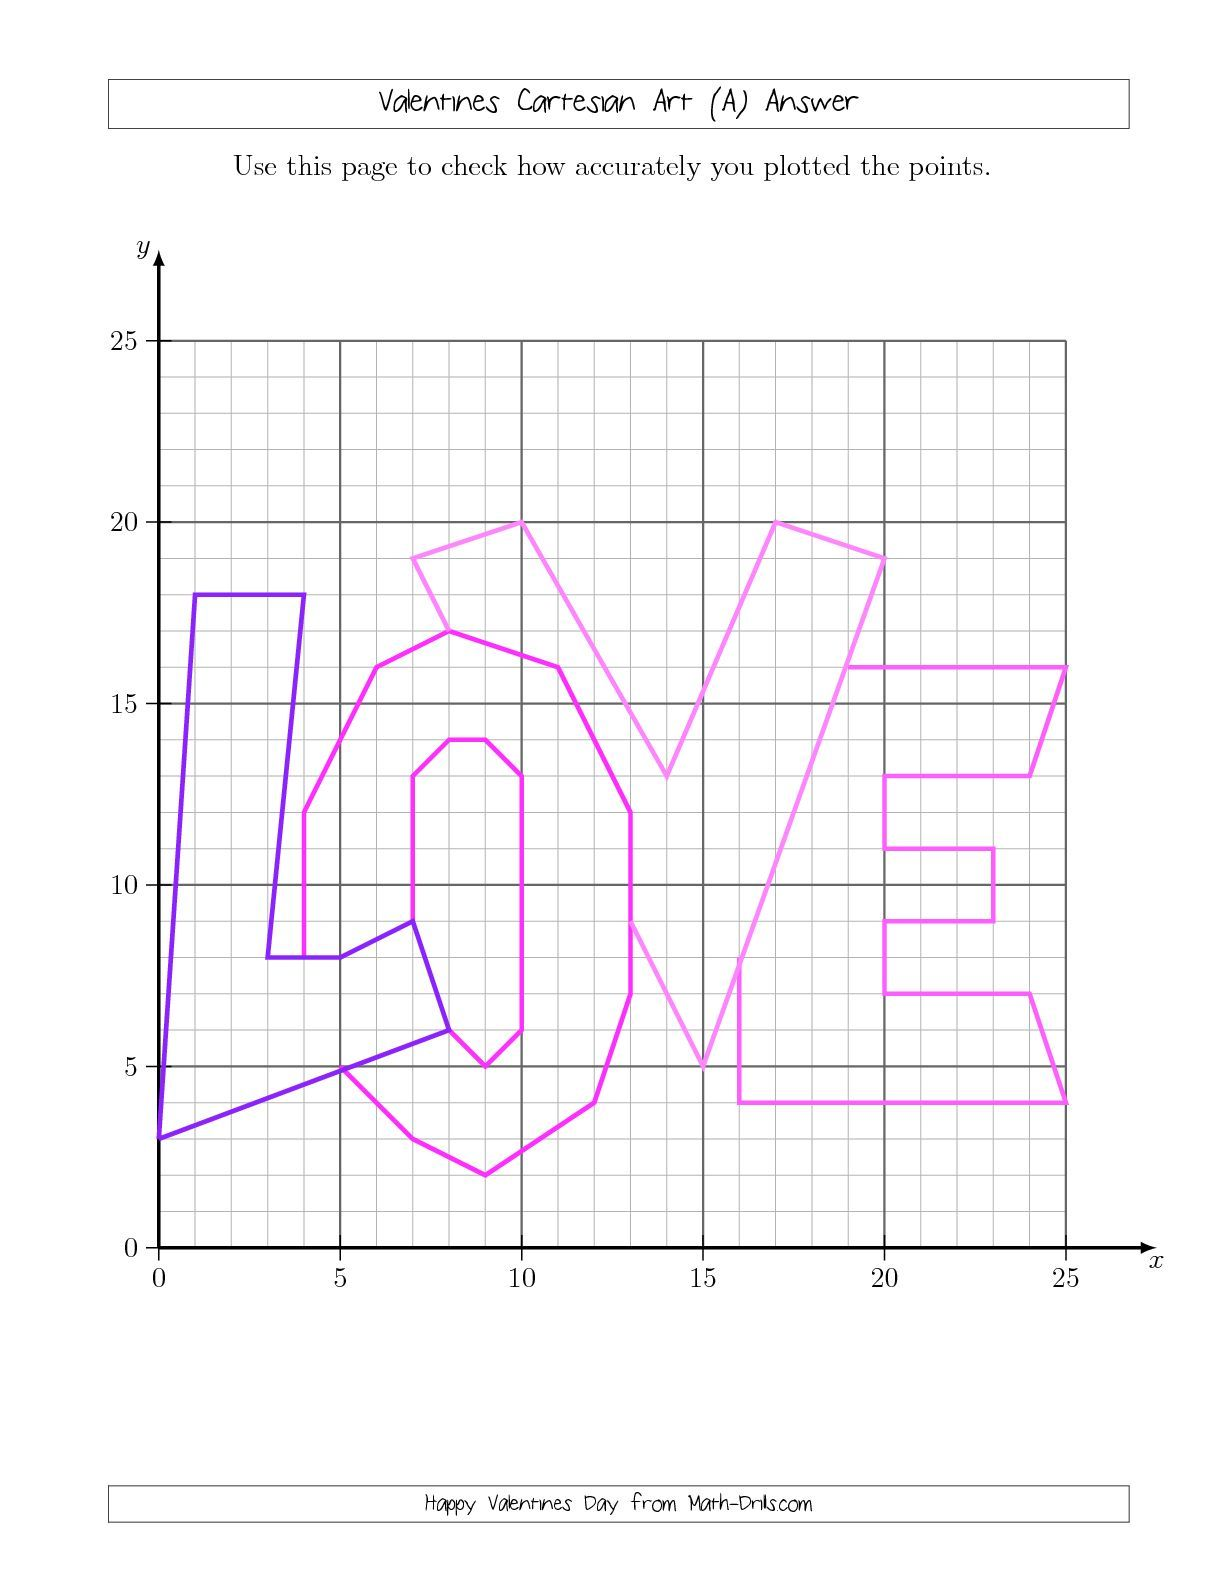 The Valentines Cartesian Art Love Math Worksheet From The Valentines Day Math Worksheet Page At